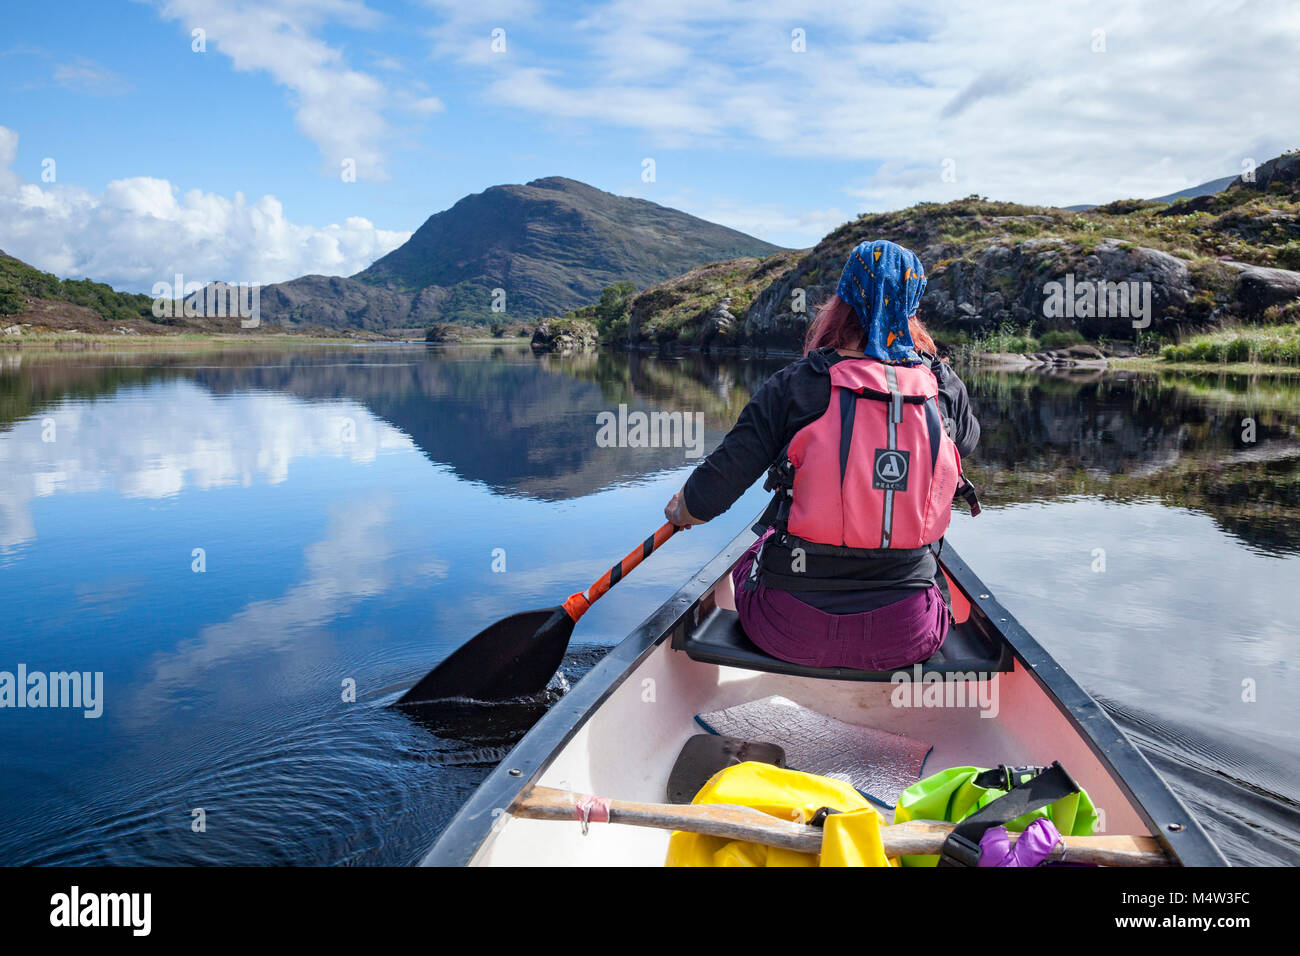 Canoeing on Upper Lough, Killarney Lakes, Killarney National Park, County Kerry, Ireland. - Stock Image